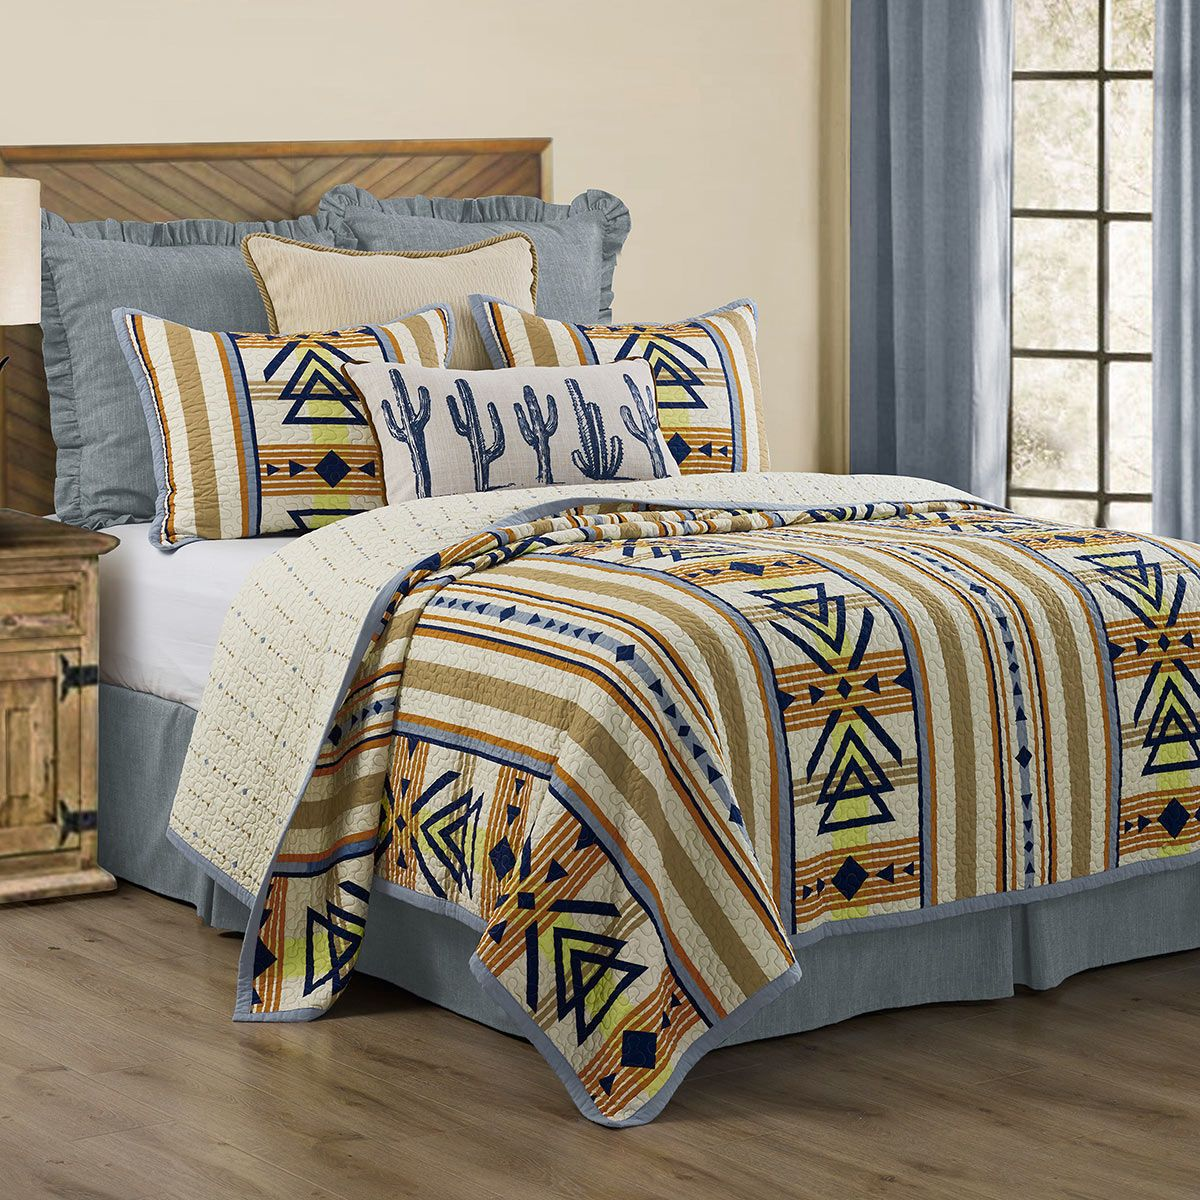 Desert Lines Quilt Set - Full/Queen